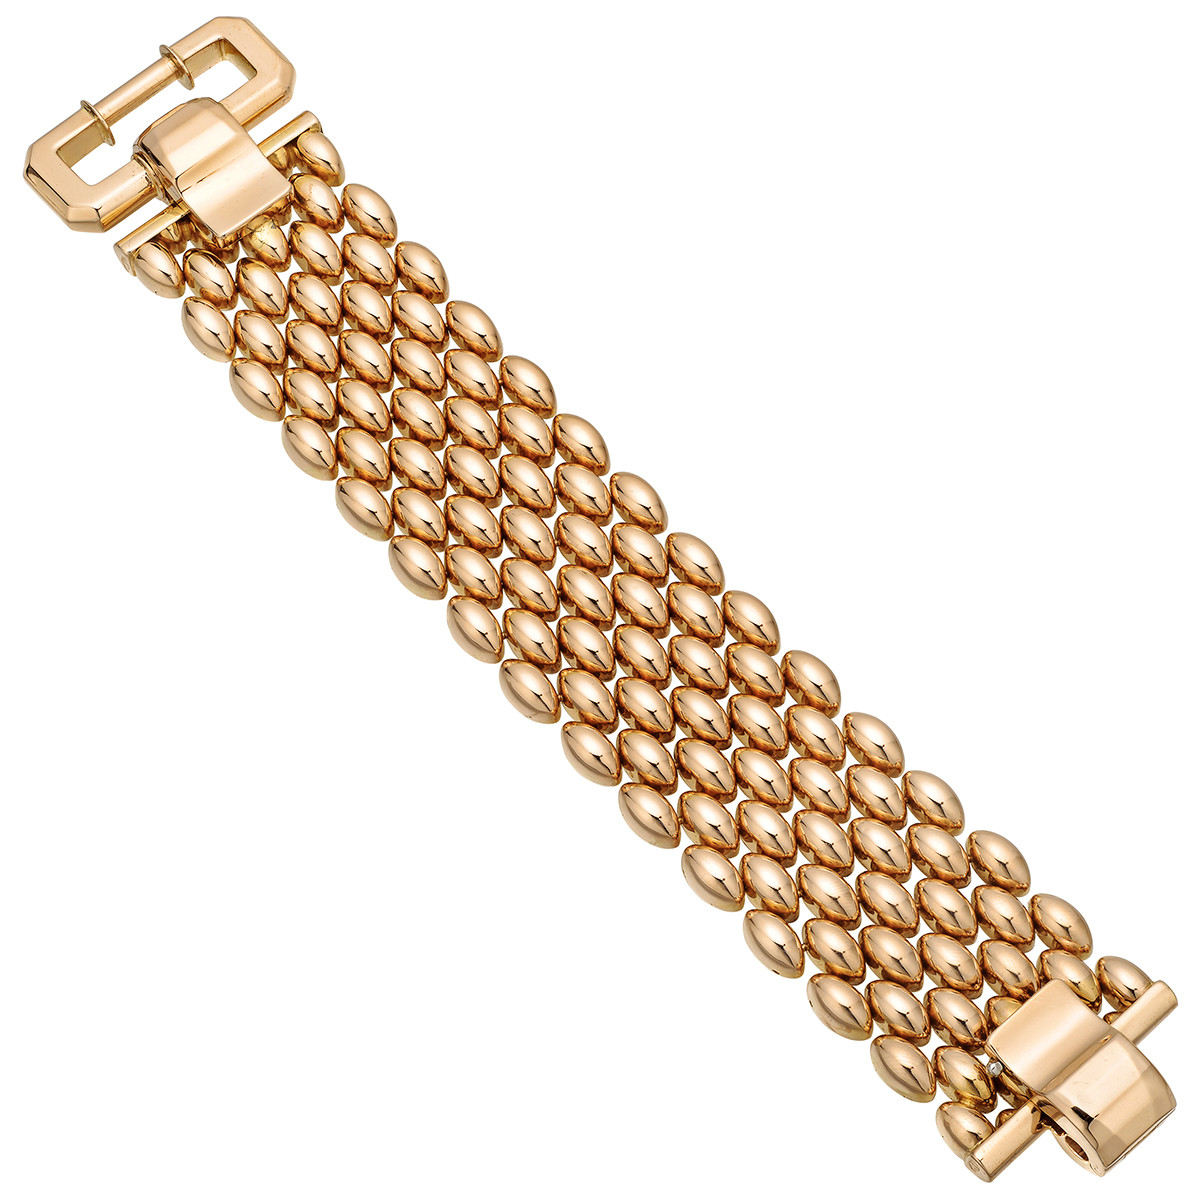 Retro 18k Yellow Gold Wide Link Bracelet